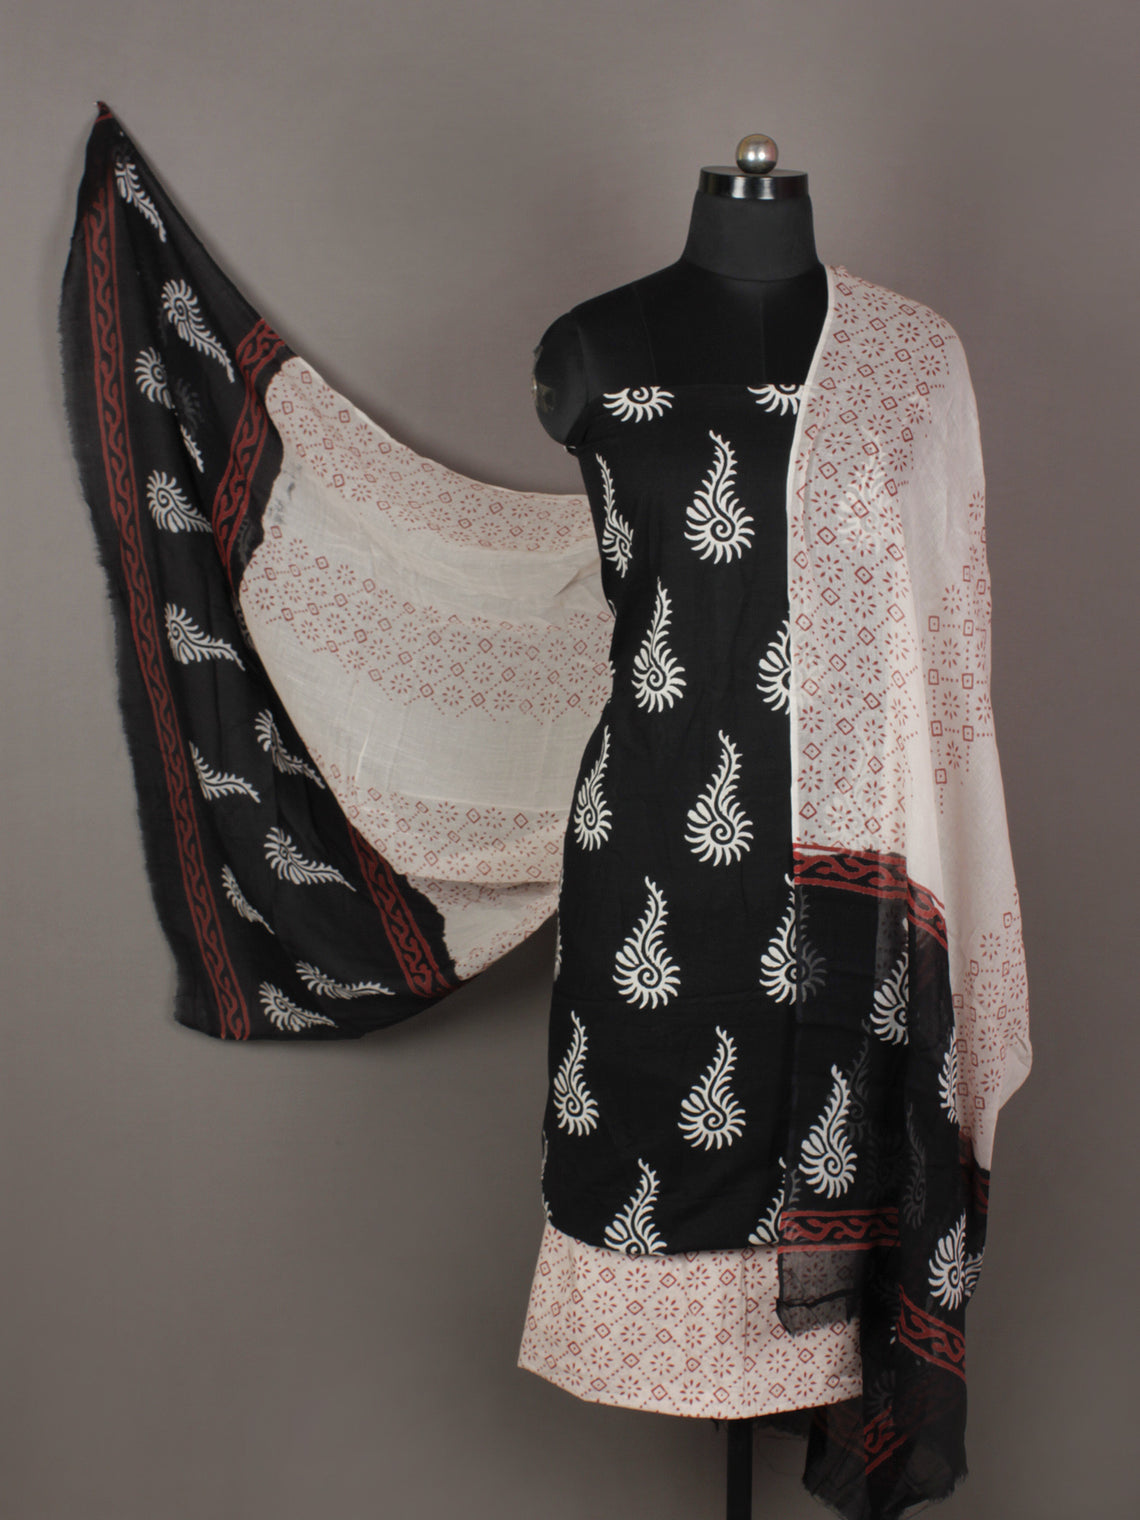 Black White Red Ivory Hand Block Printed Cotton Suit-Salwar Fabric & Dupatta - S1628189